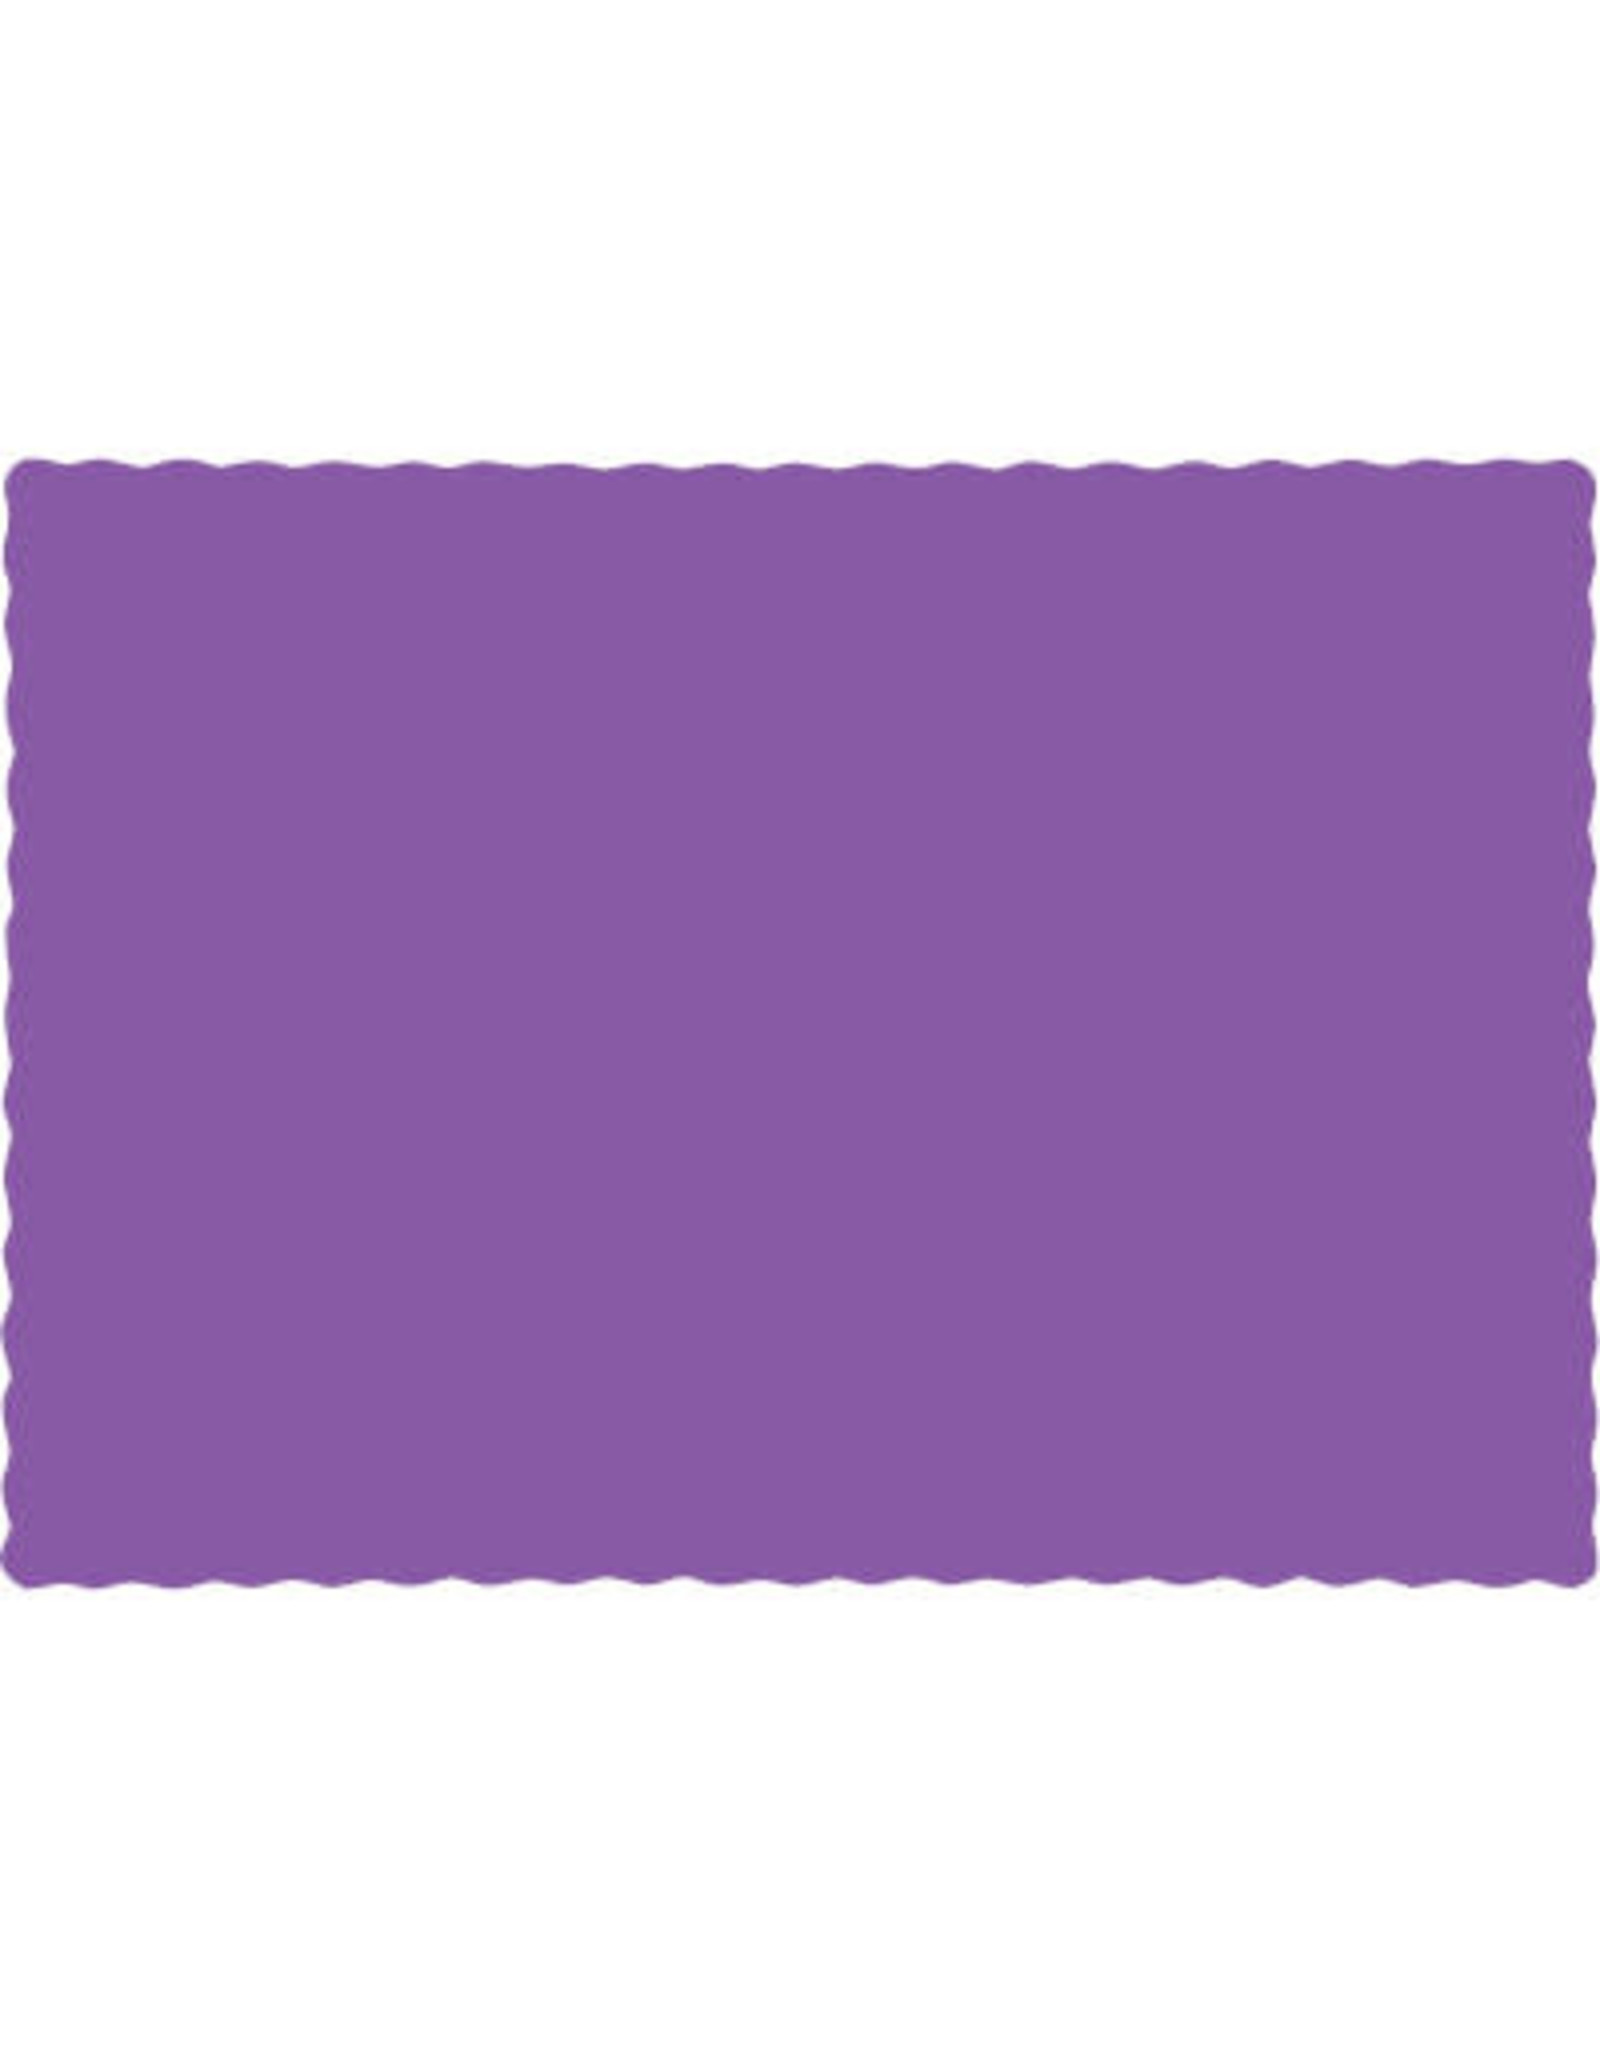 Touch of Color AMETHYST PURPLE PLACEMATS